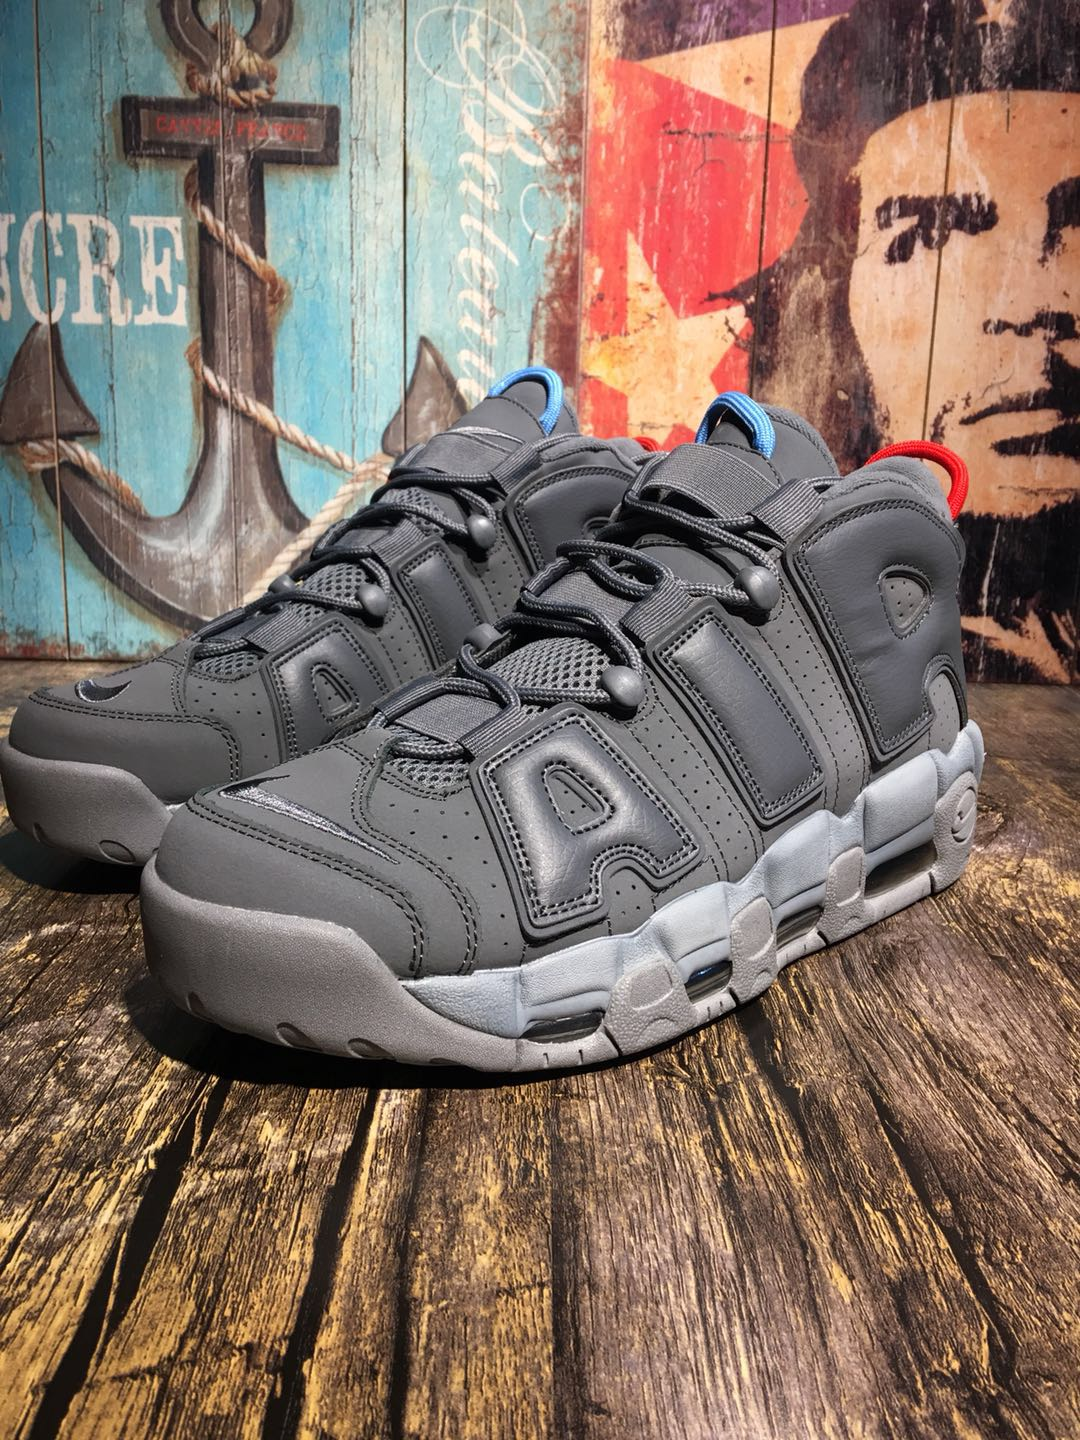 Alexander-John Nike Air Uptempo Carbon Grey Shoes